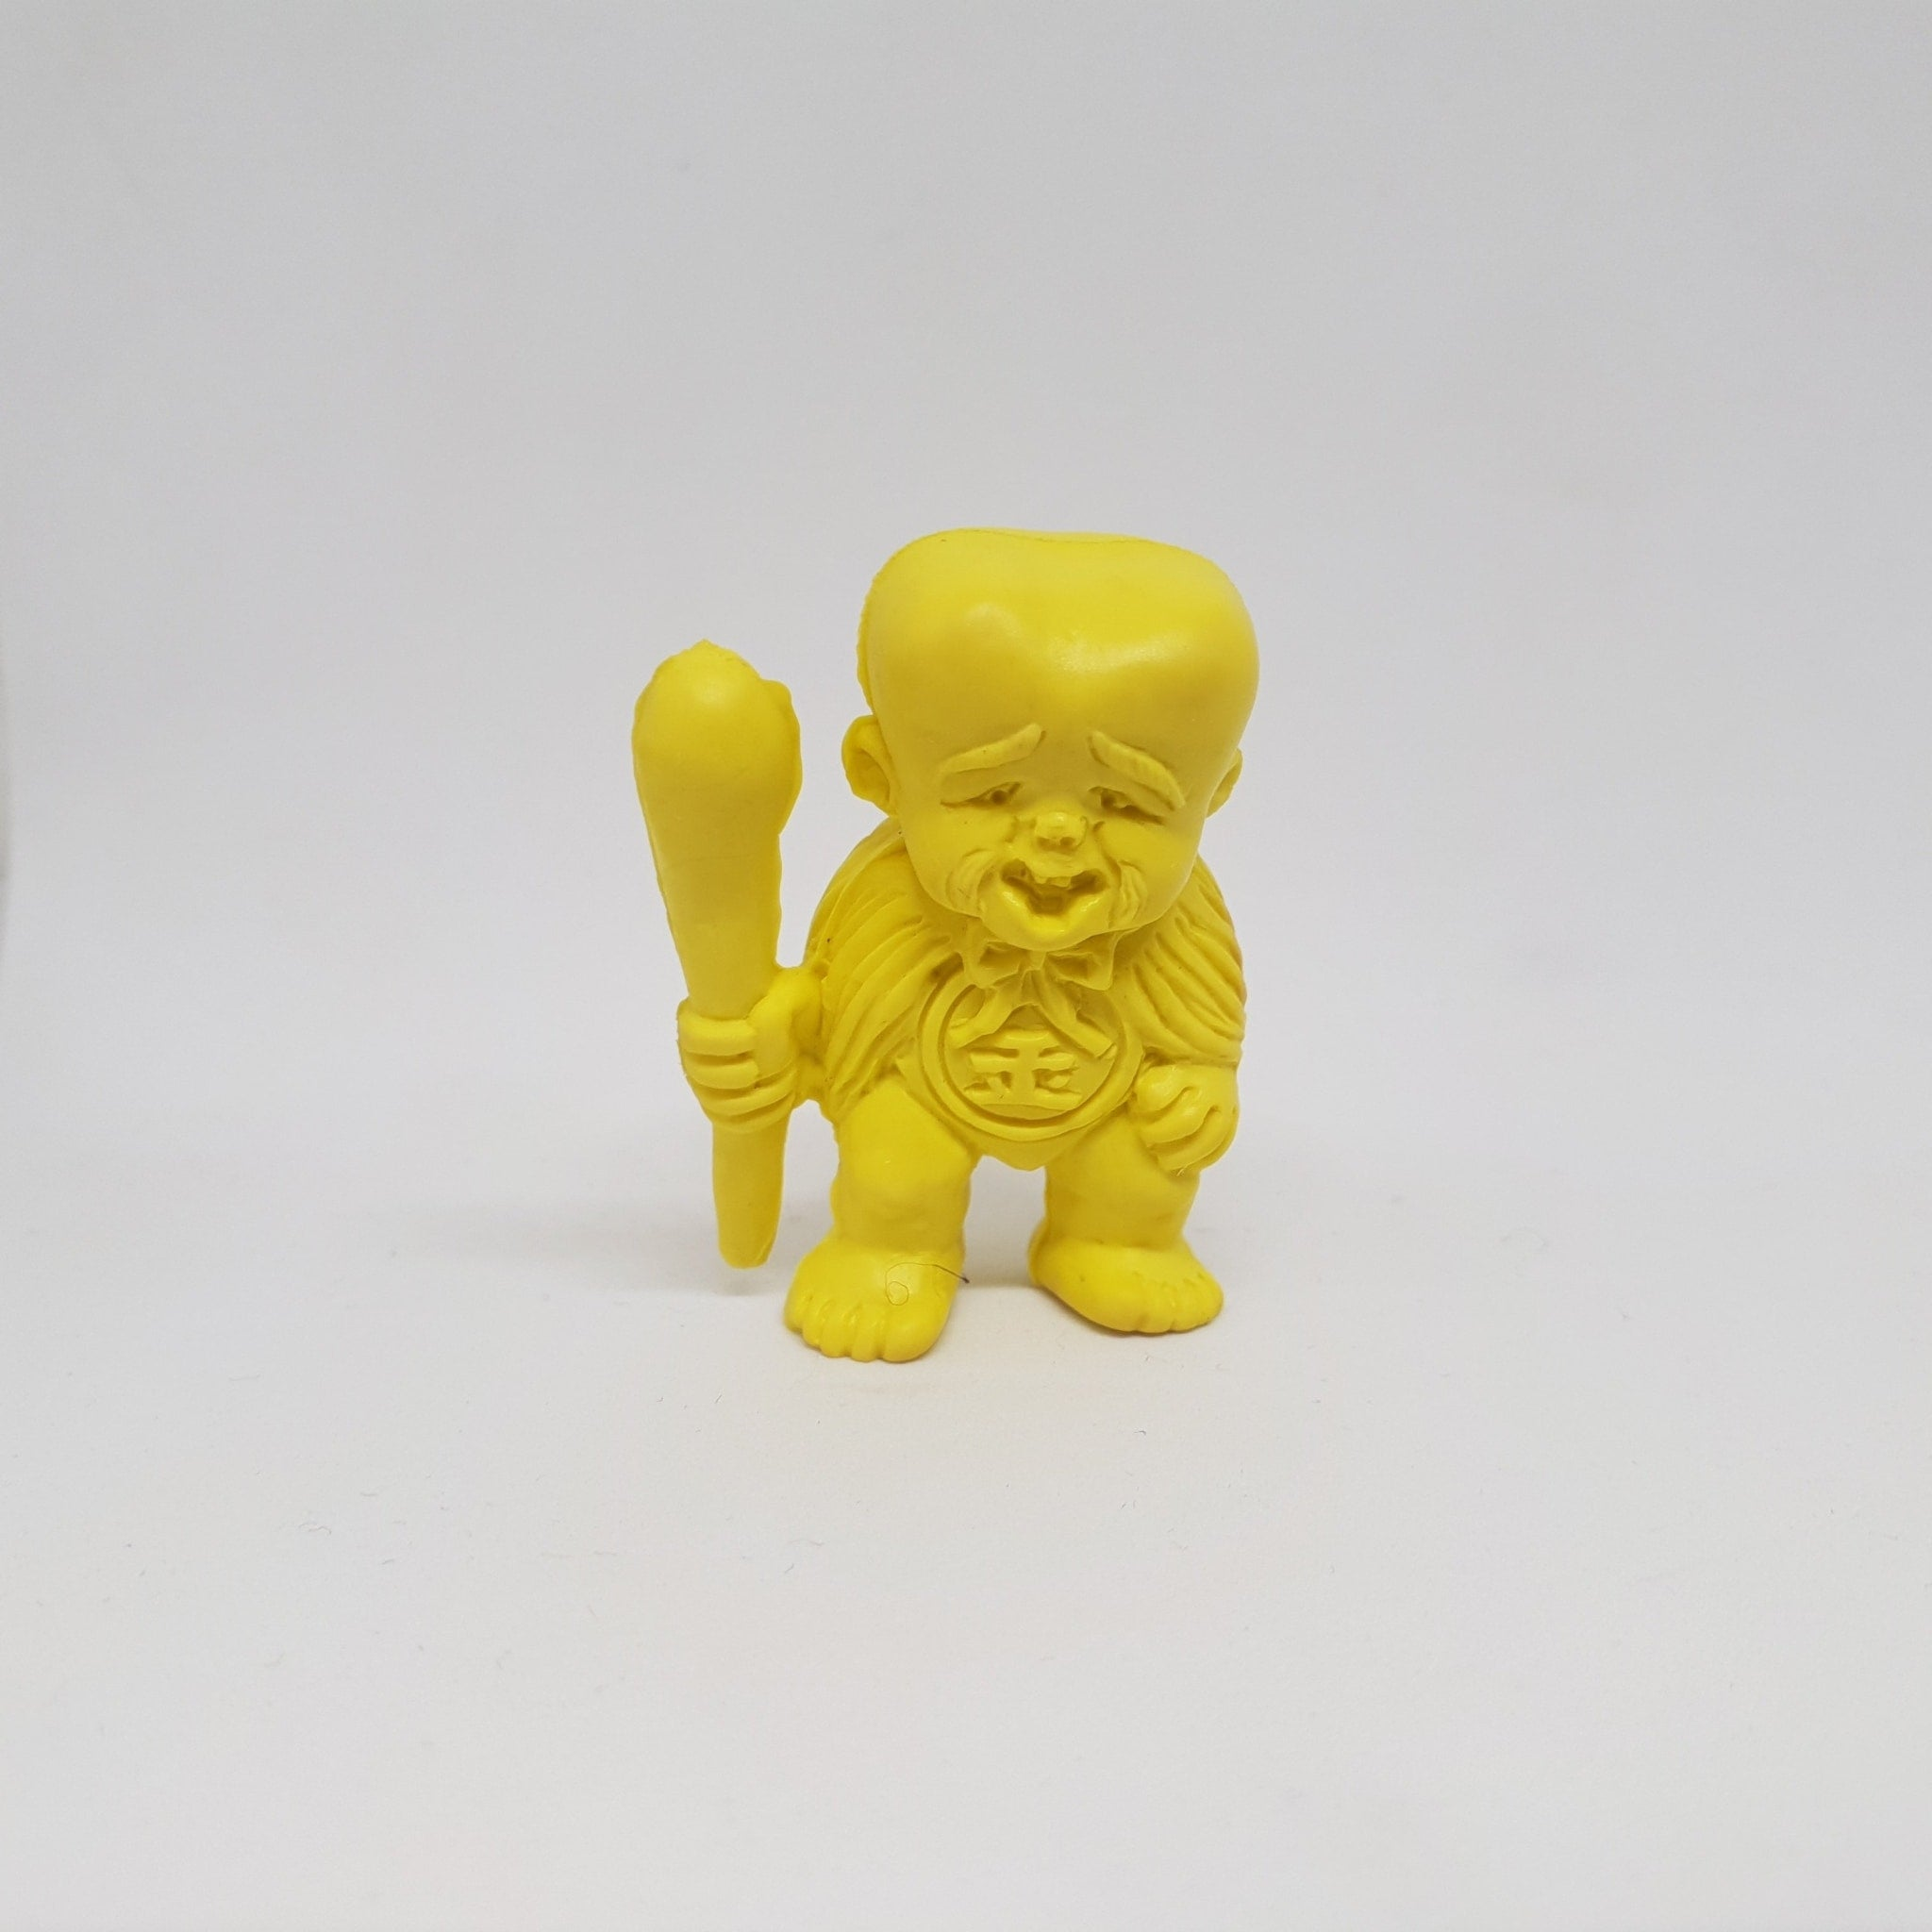 Gegege No Kitaro - Wise Looking Dude - Yellow - Keshi